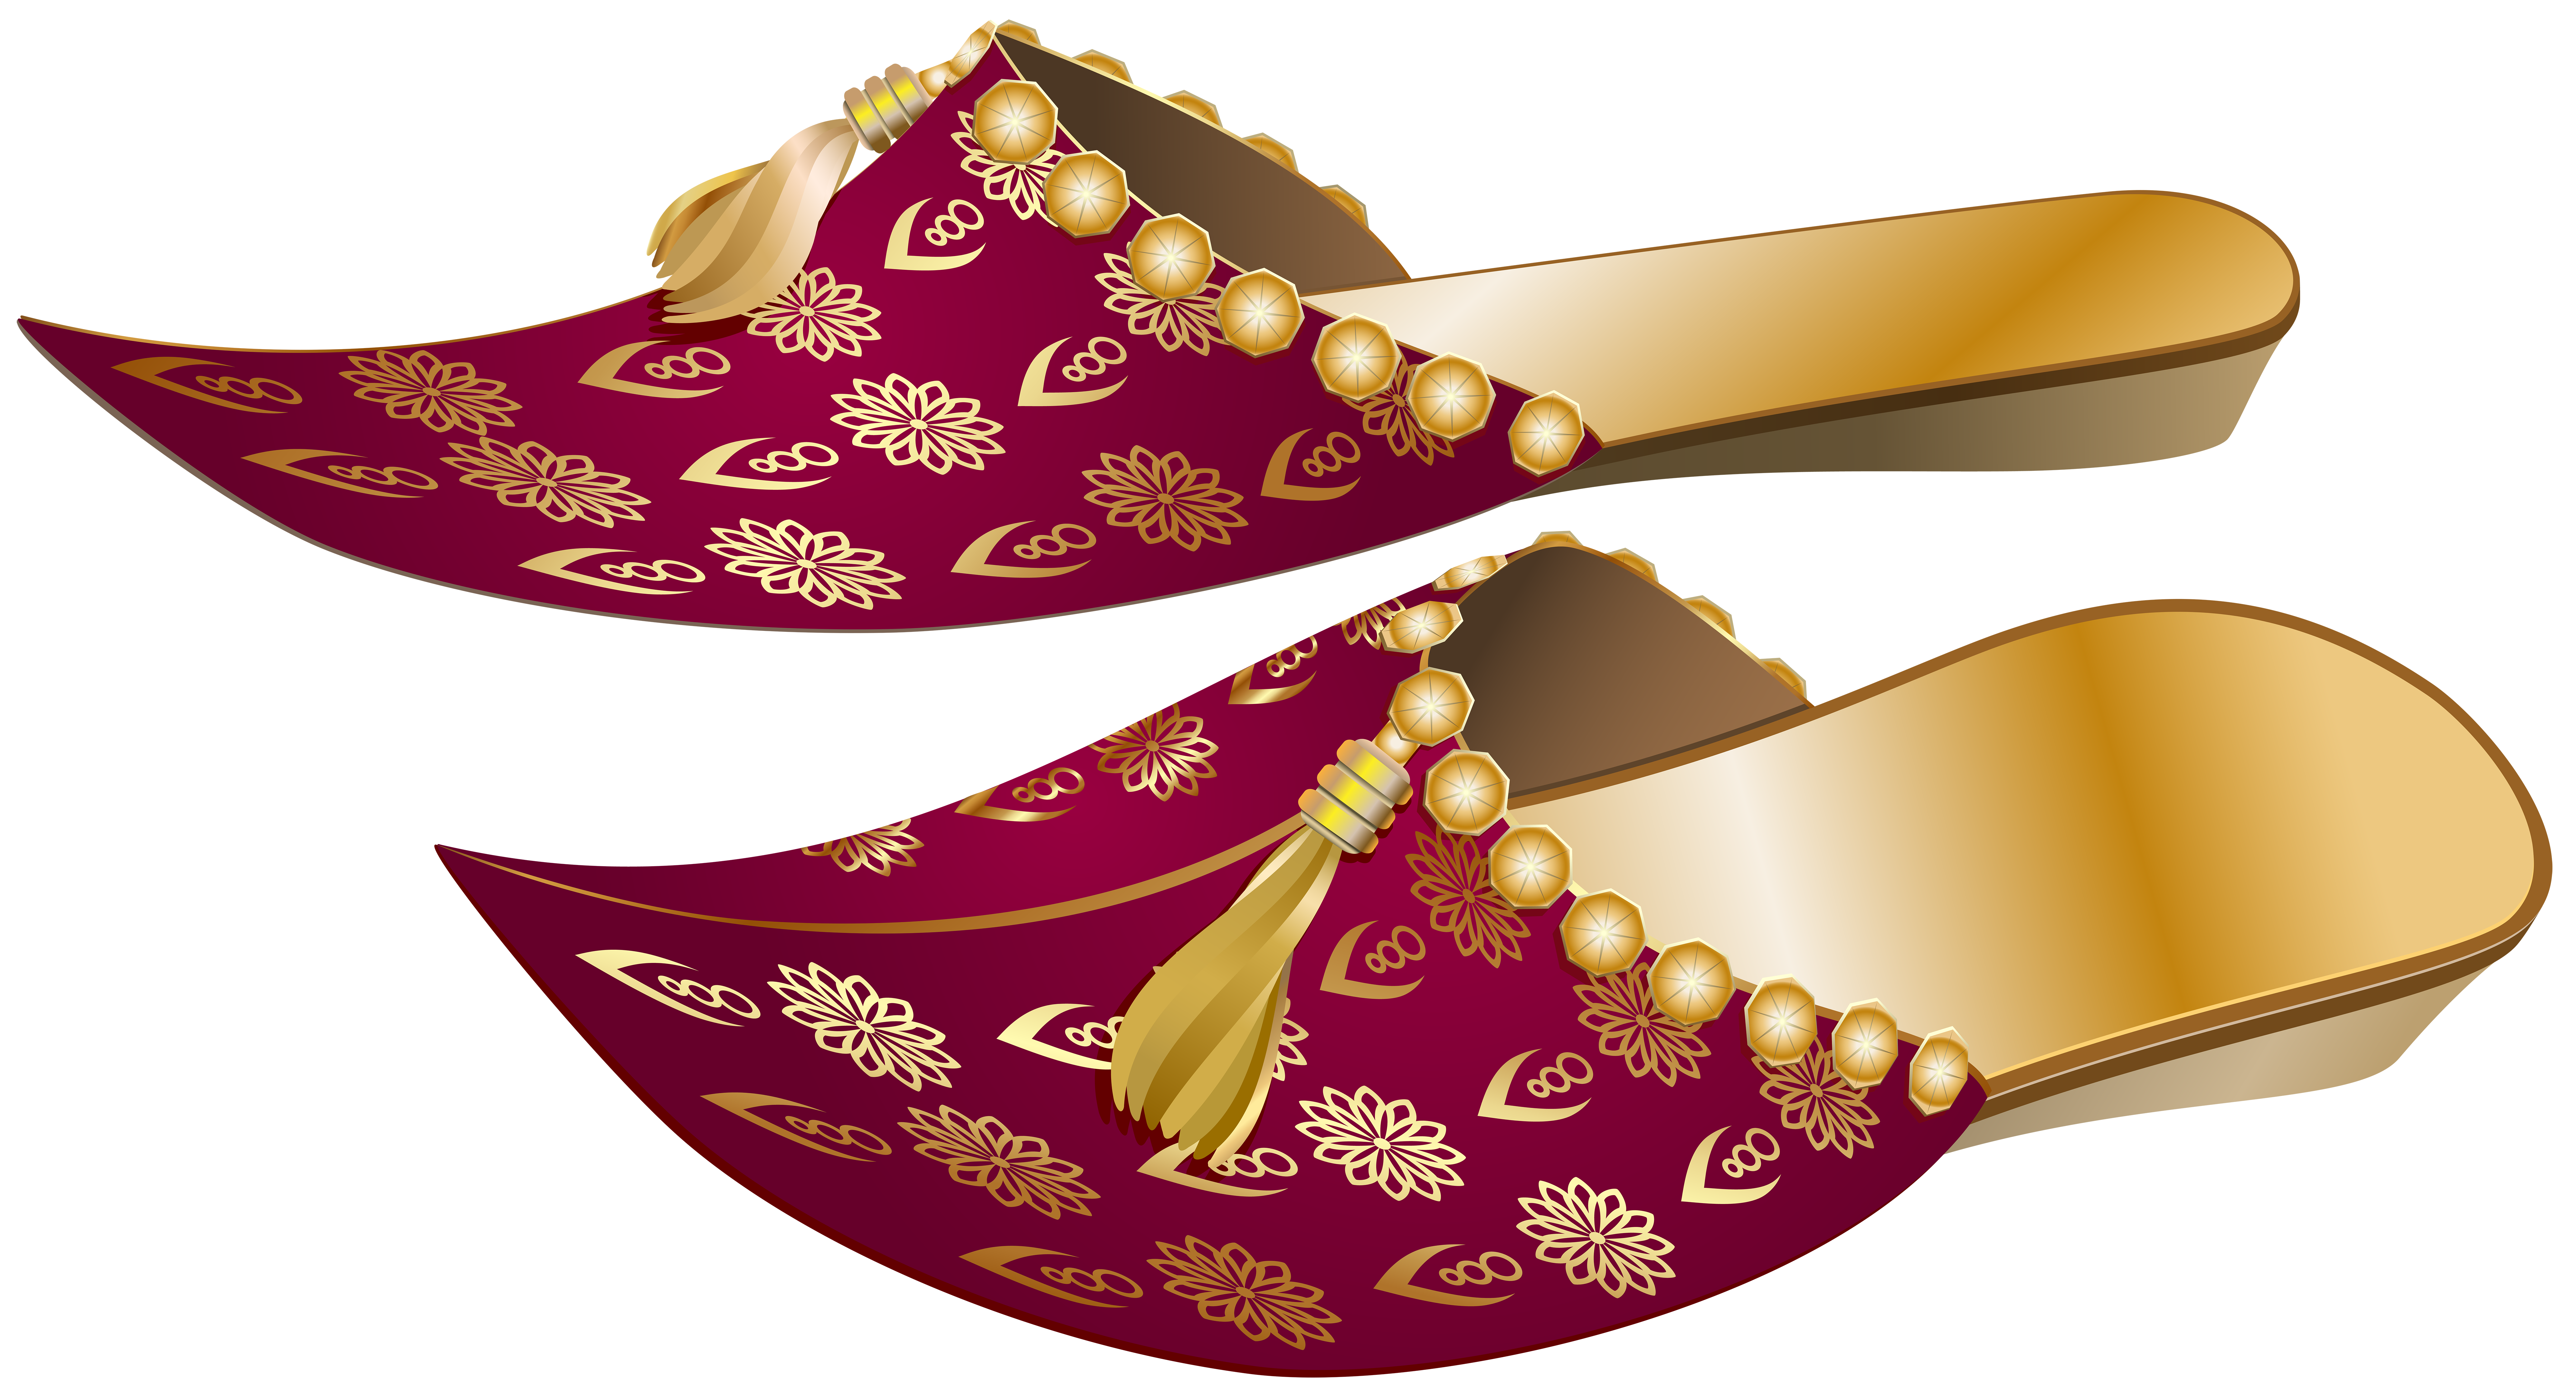 banner free download Slippers clipart. Arabian png clip art.